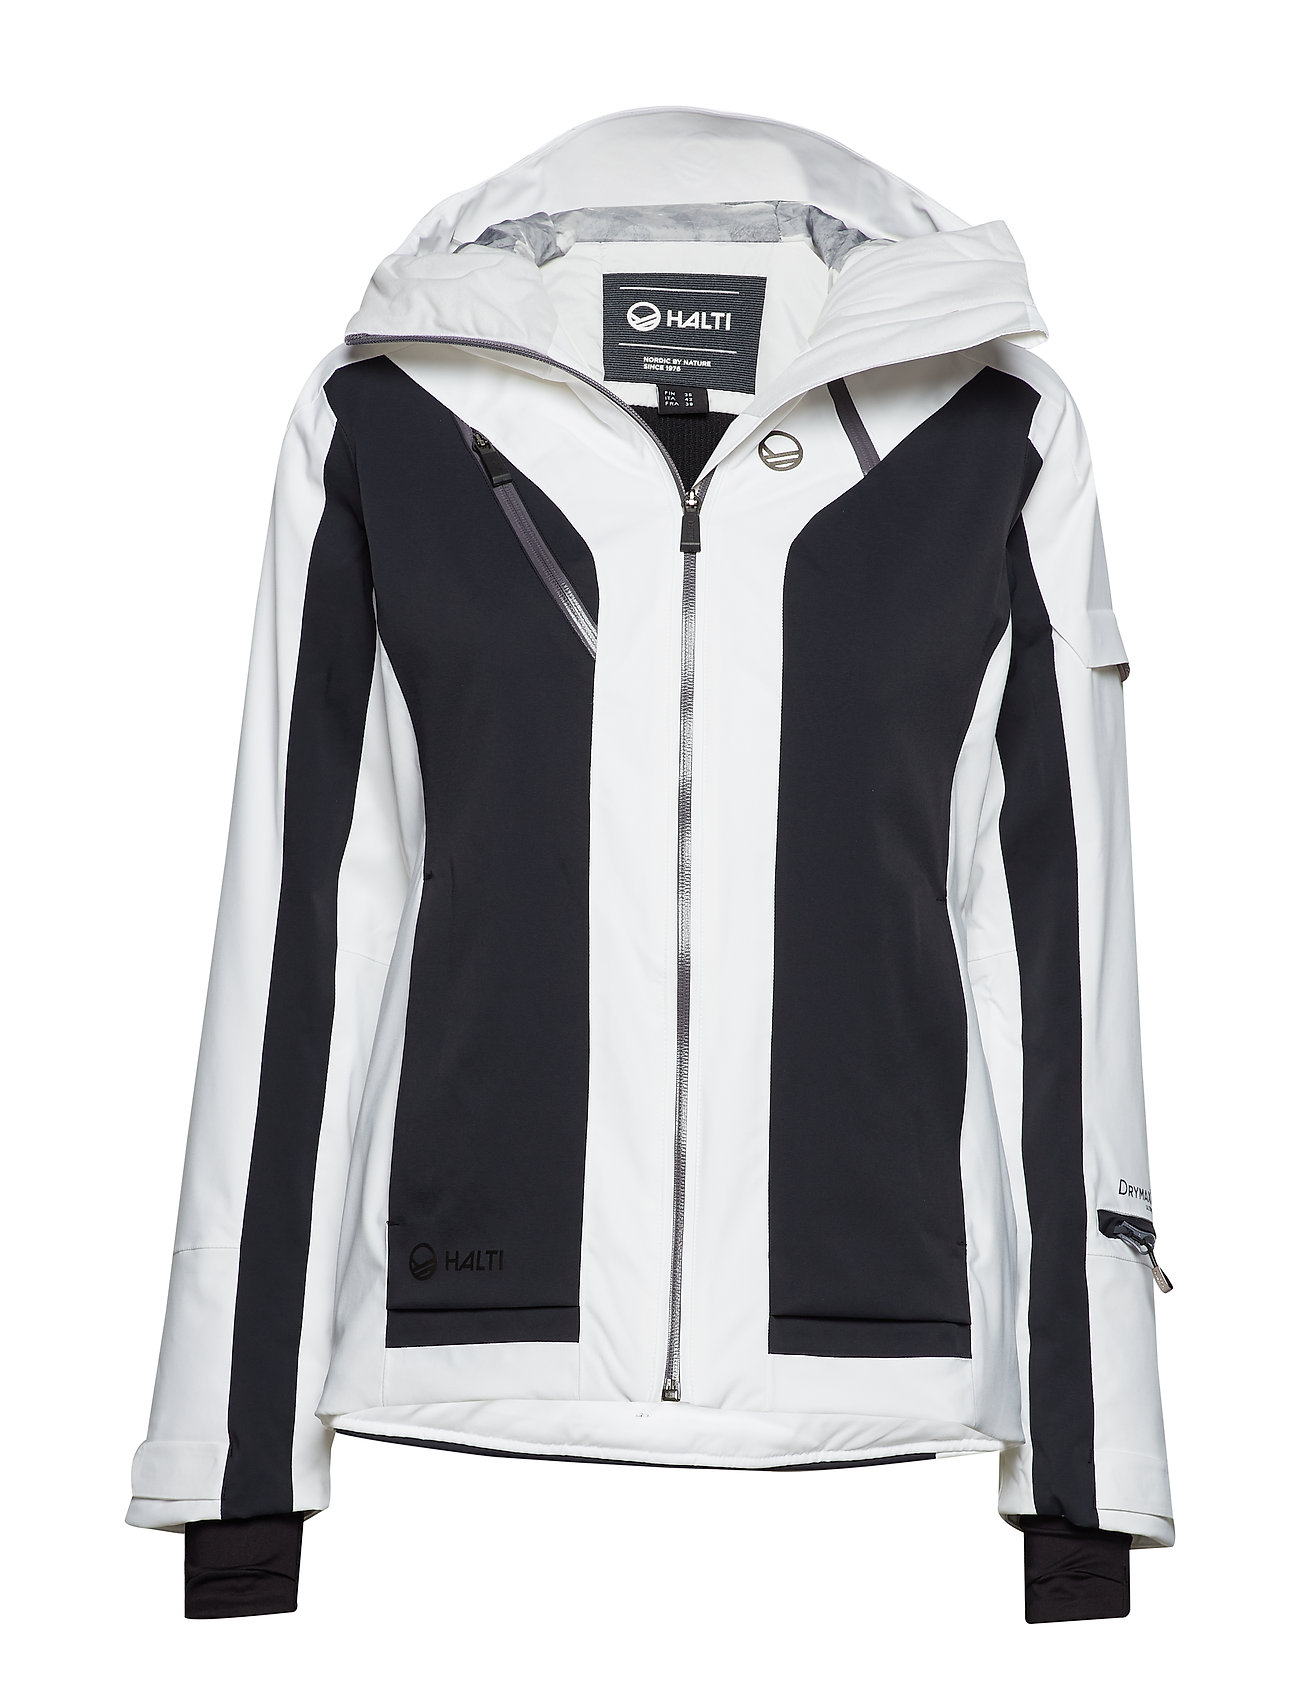 Halti Podium W DX ski jacket